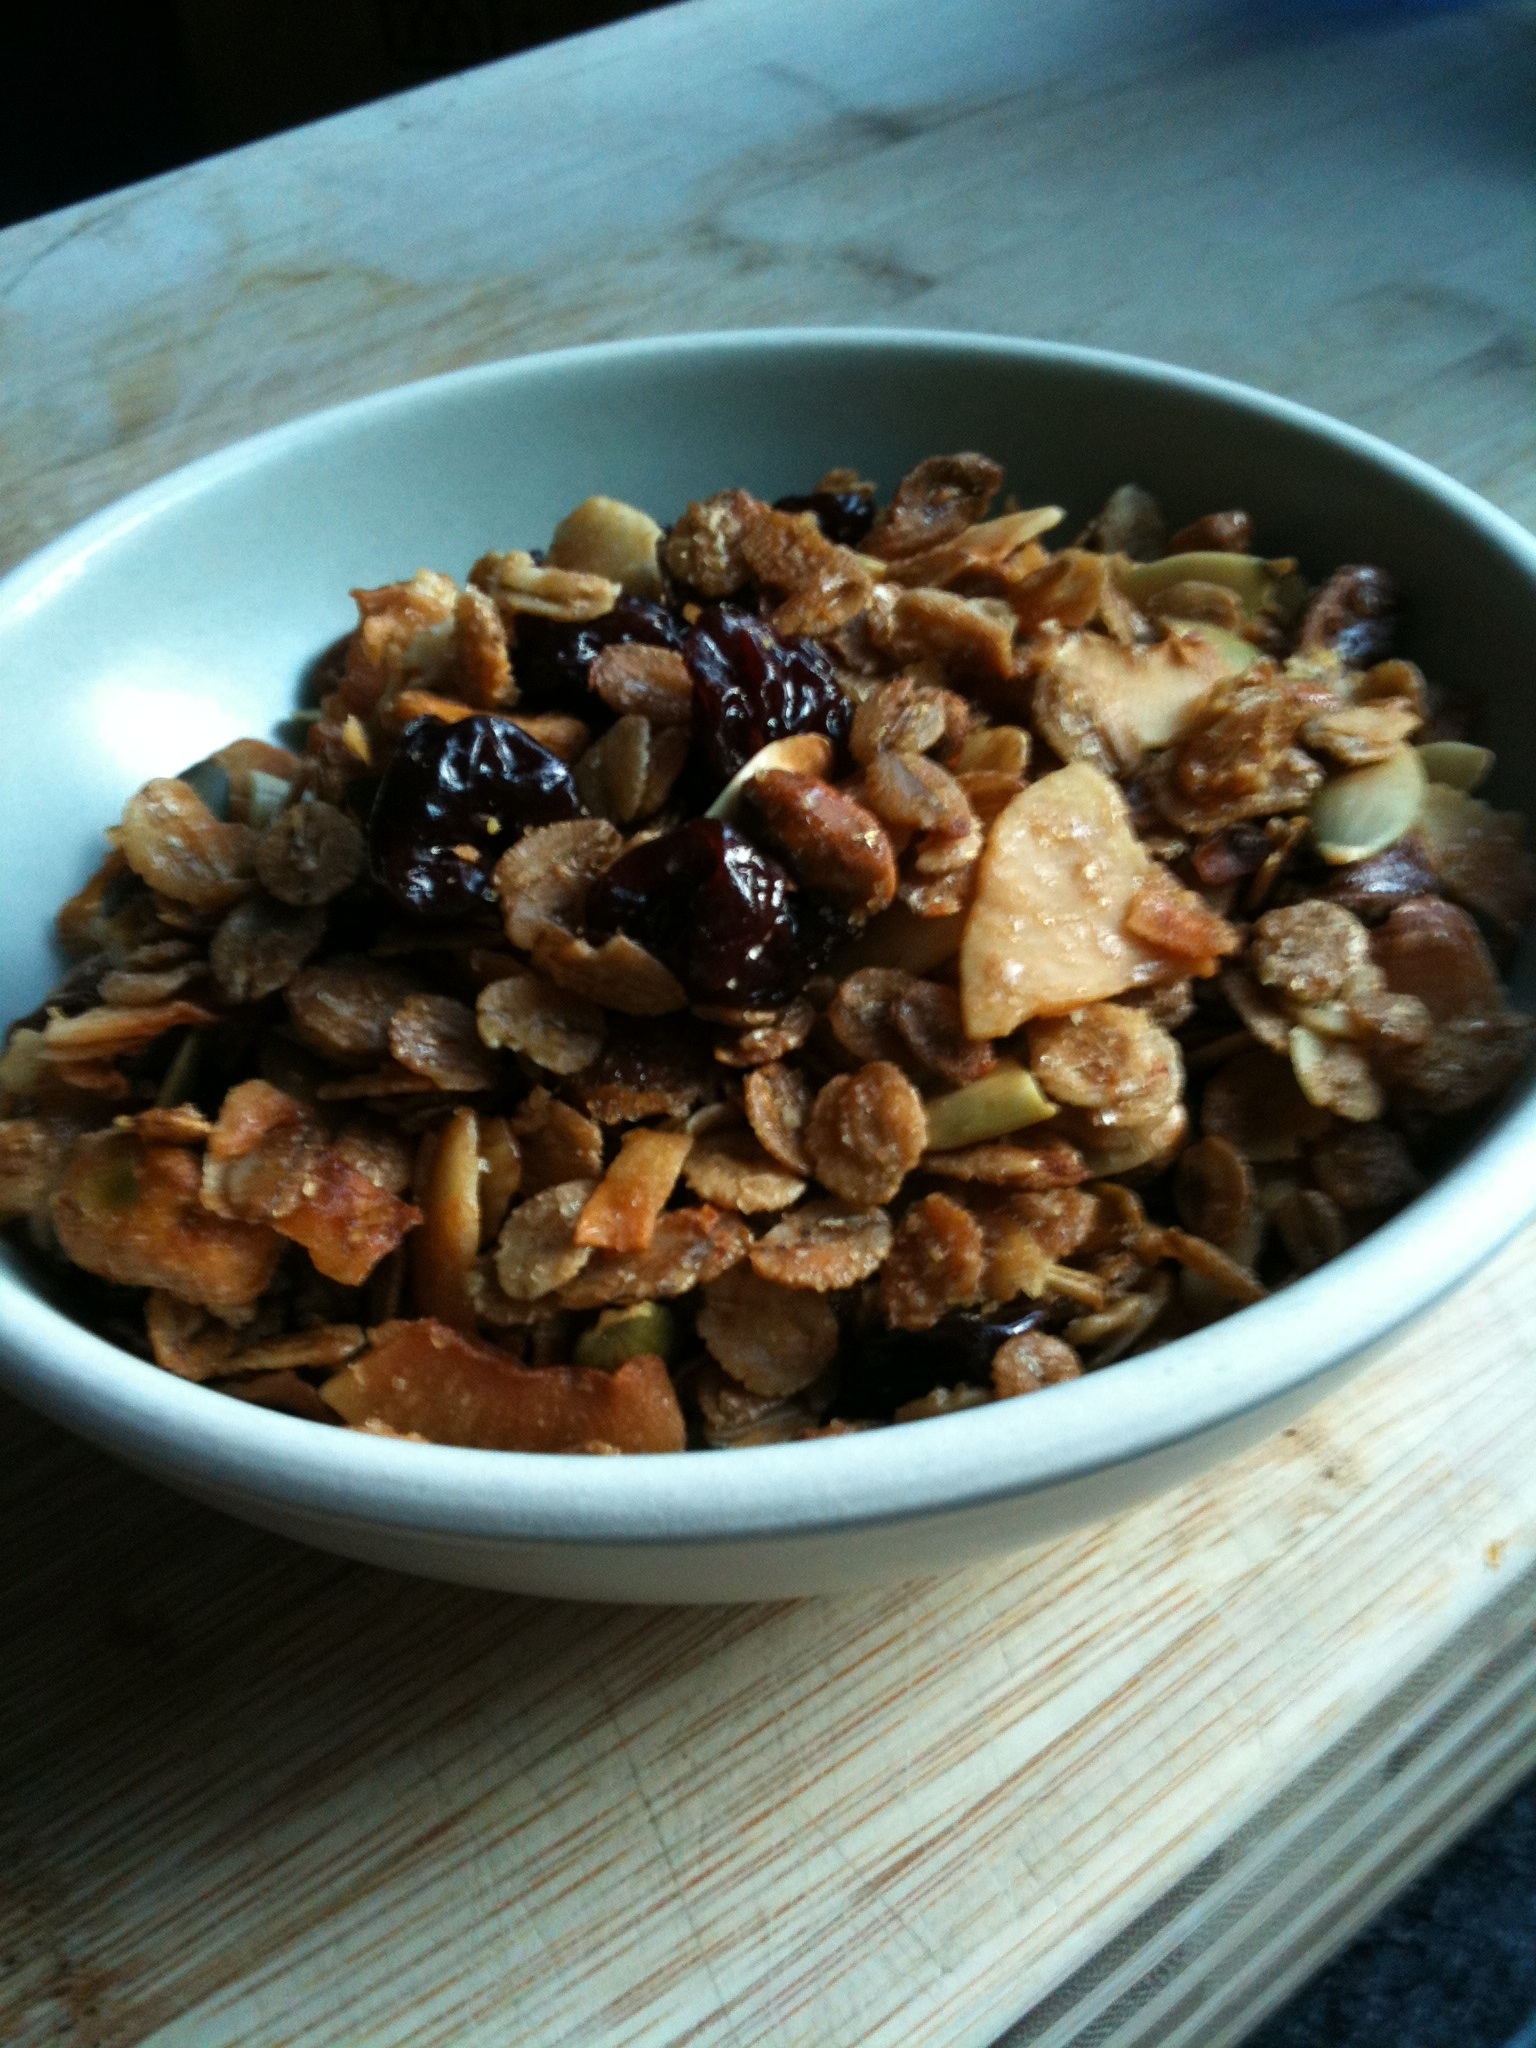 A New Granola – Learning to Eat